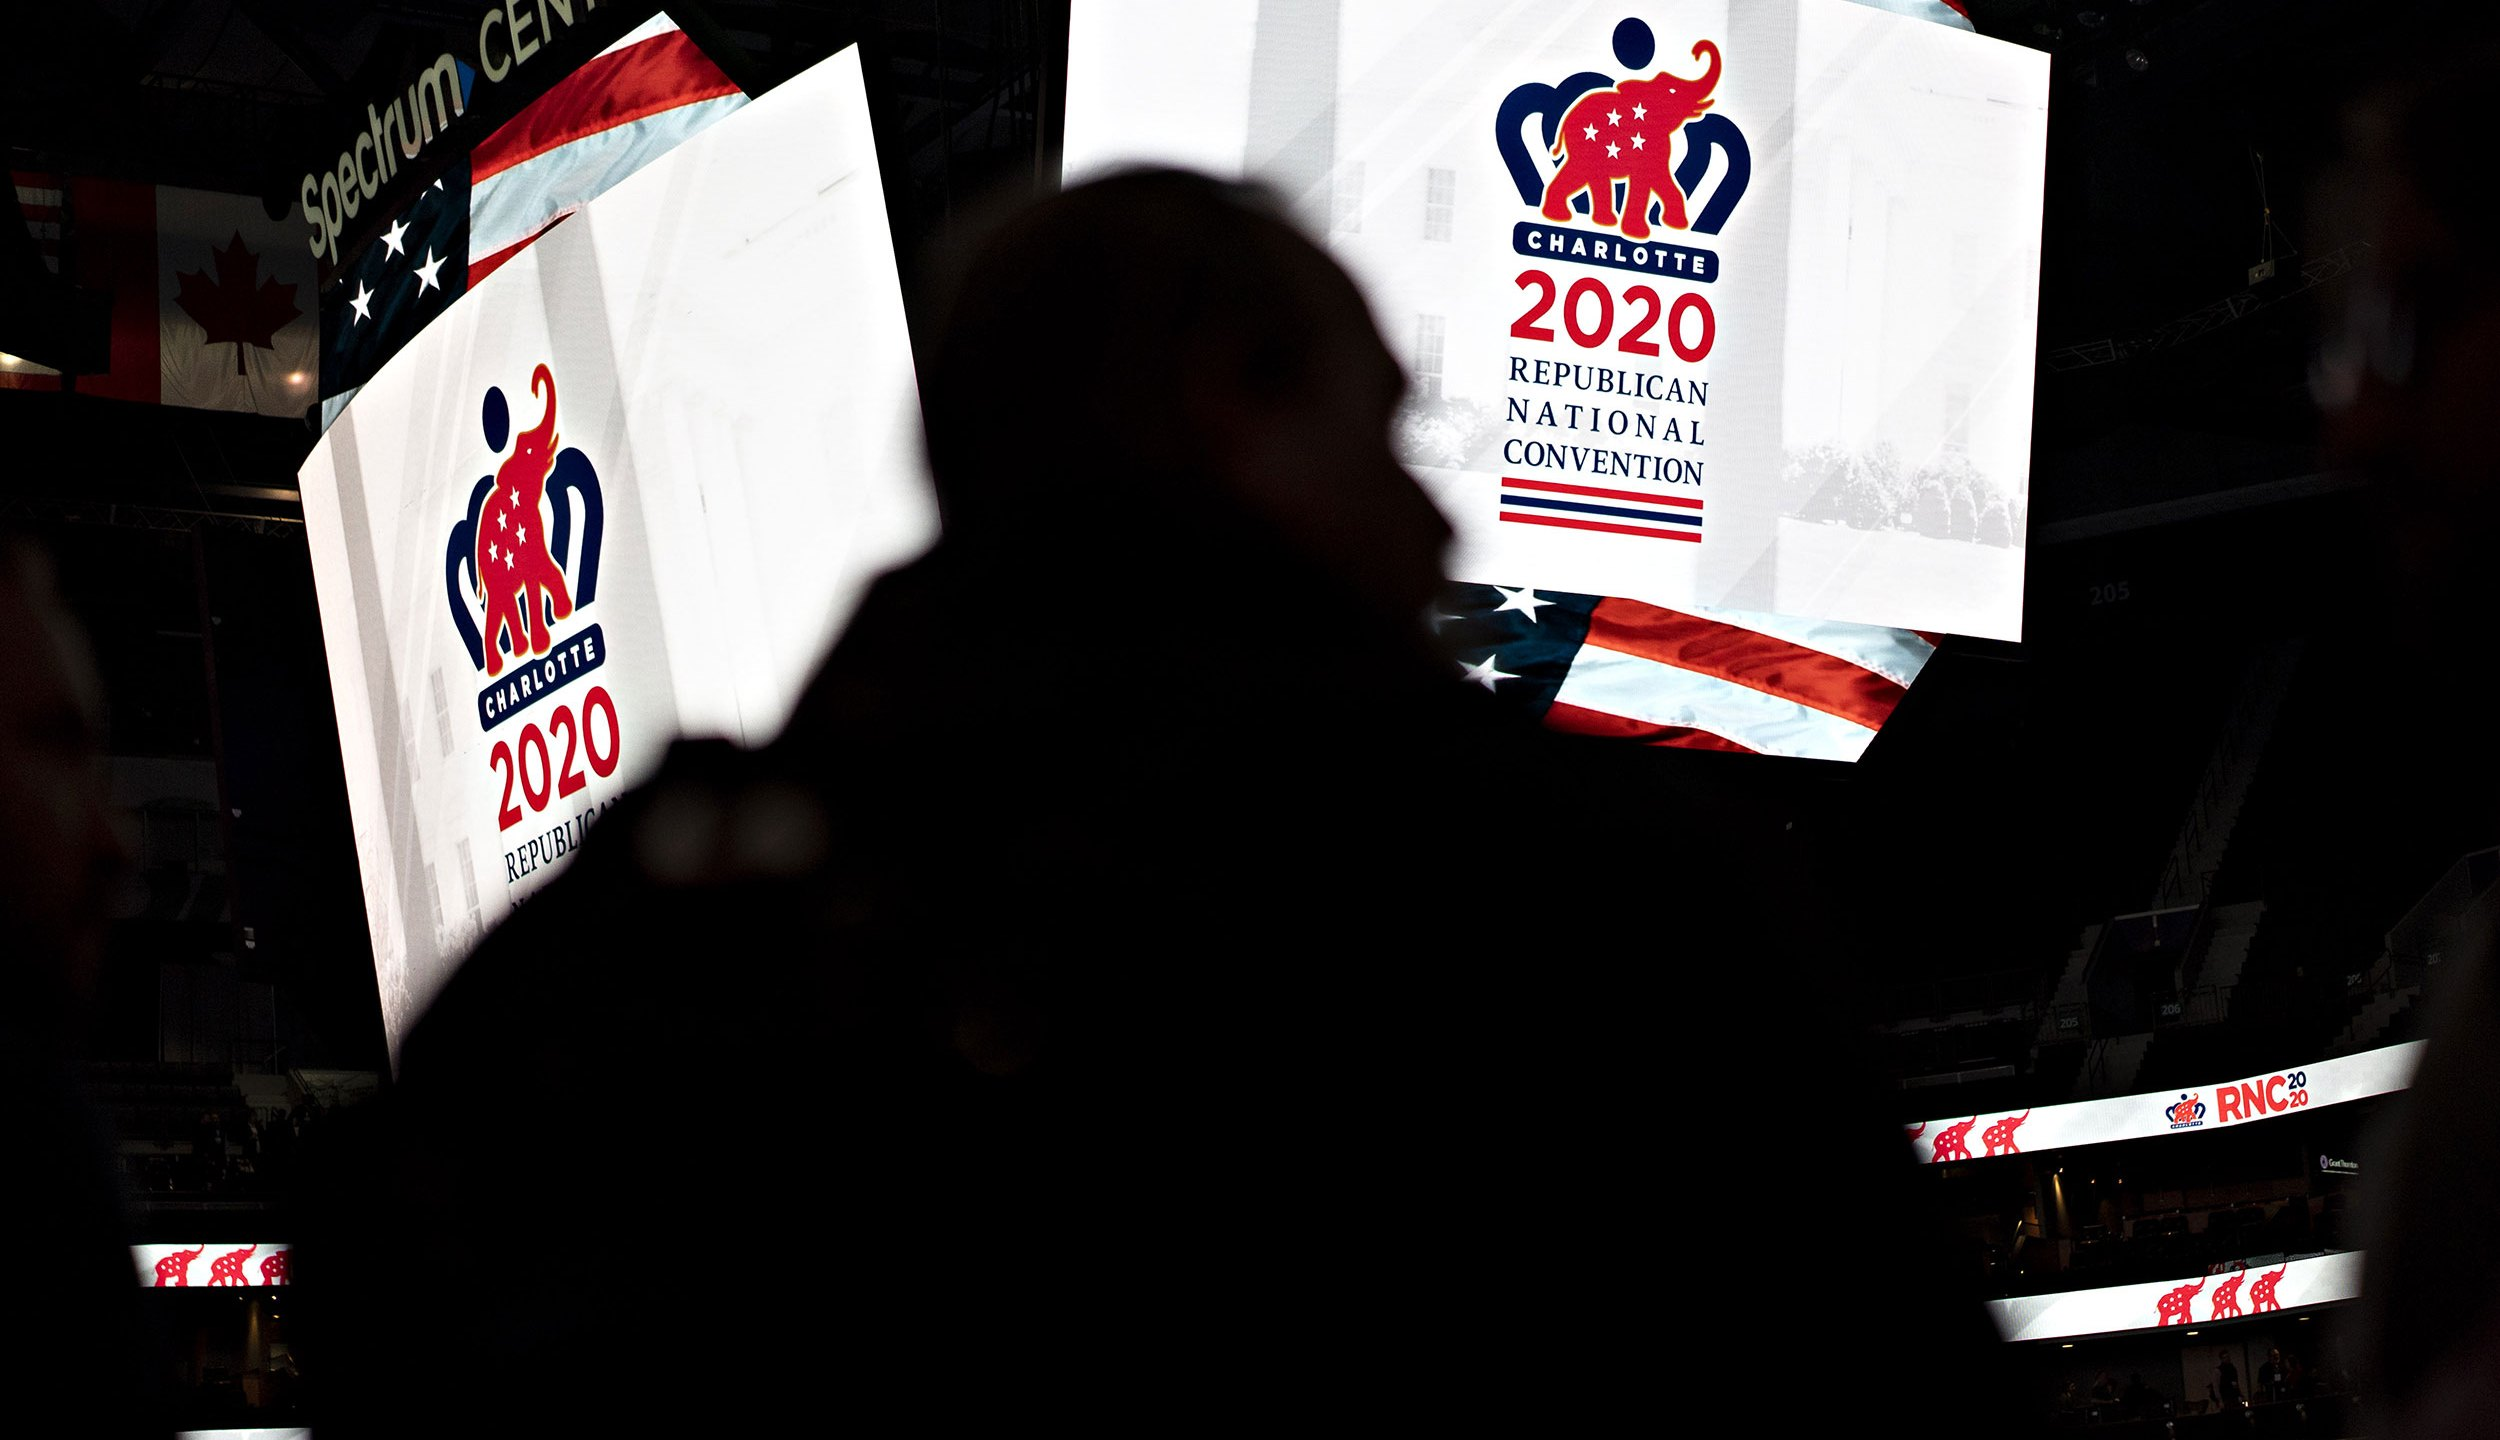 2020 Republican National Convention signage is displayed inside the Spectrum Center during a media walk-through in Charlotte, North Carolina, U.S. on Nov. 12, 2019.(Andrew Harrer/Bloomberg via Getty Images)